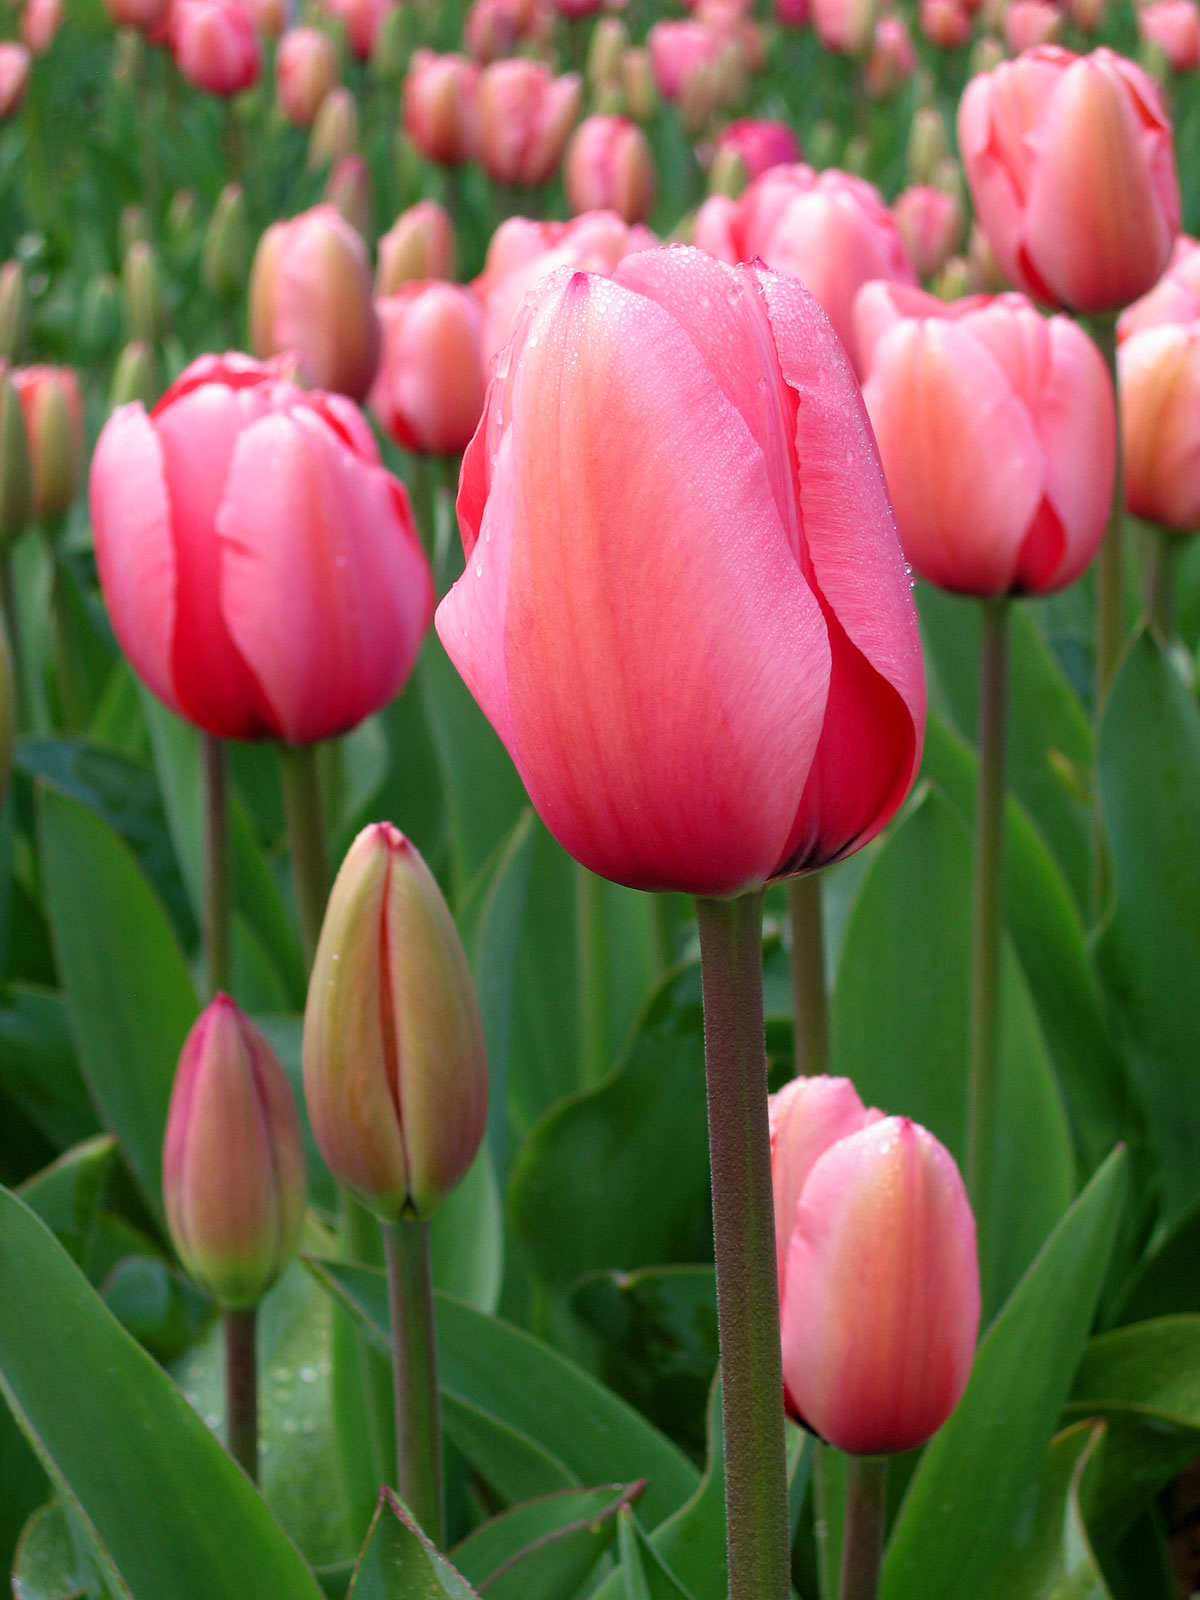 Tulips (Floriade canberra); photo by John O'Neill